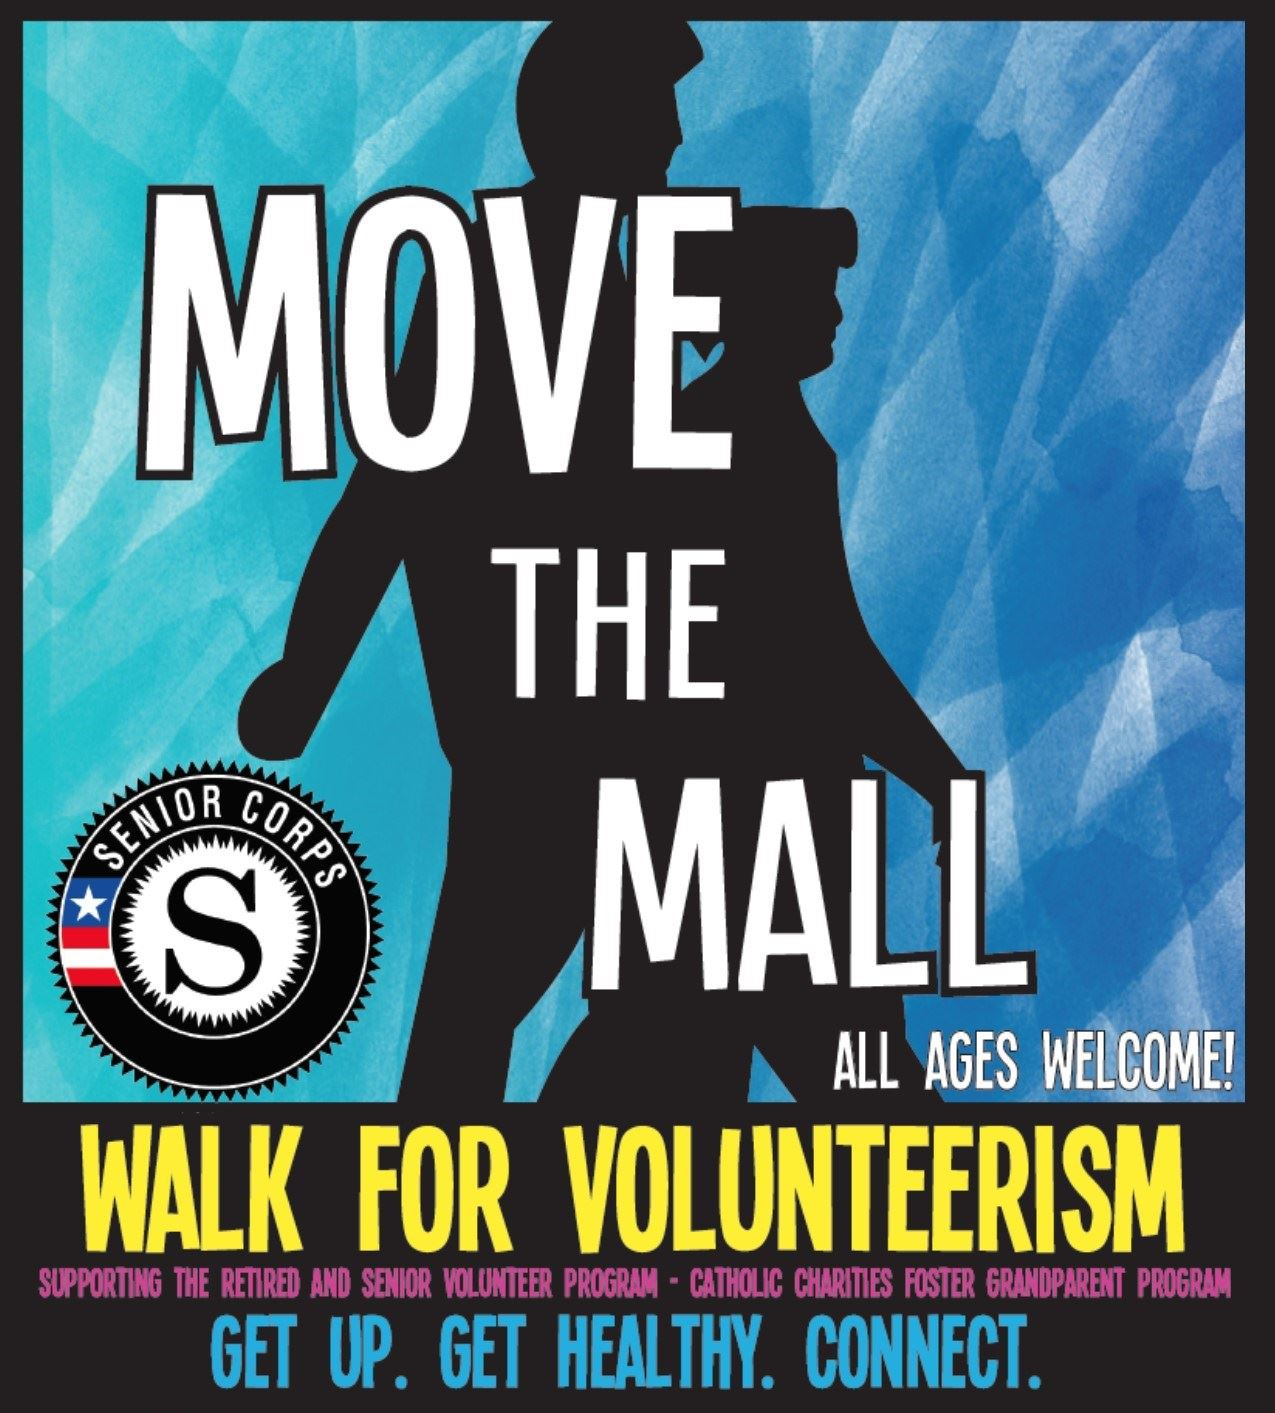 Move the Mall Walk for Volunteerism Poster. Get Up. Get Healthy. Connect.